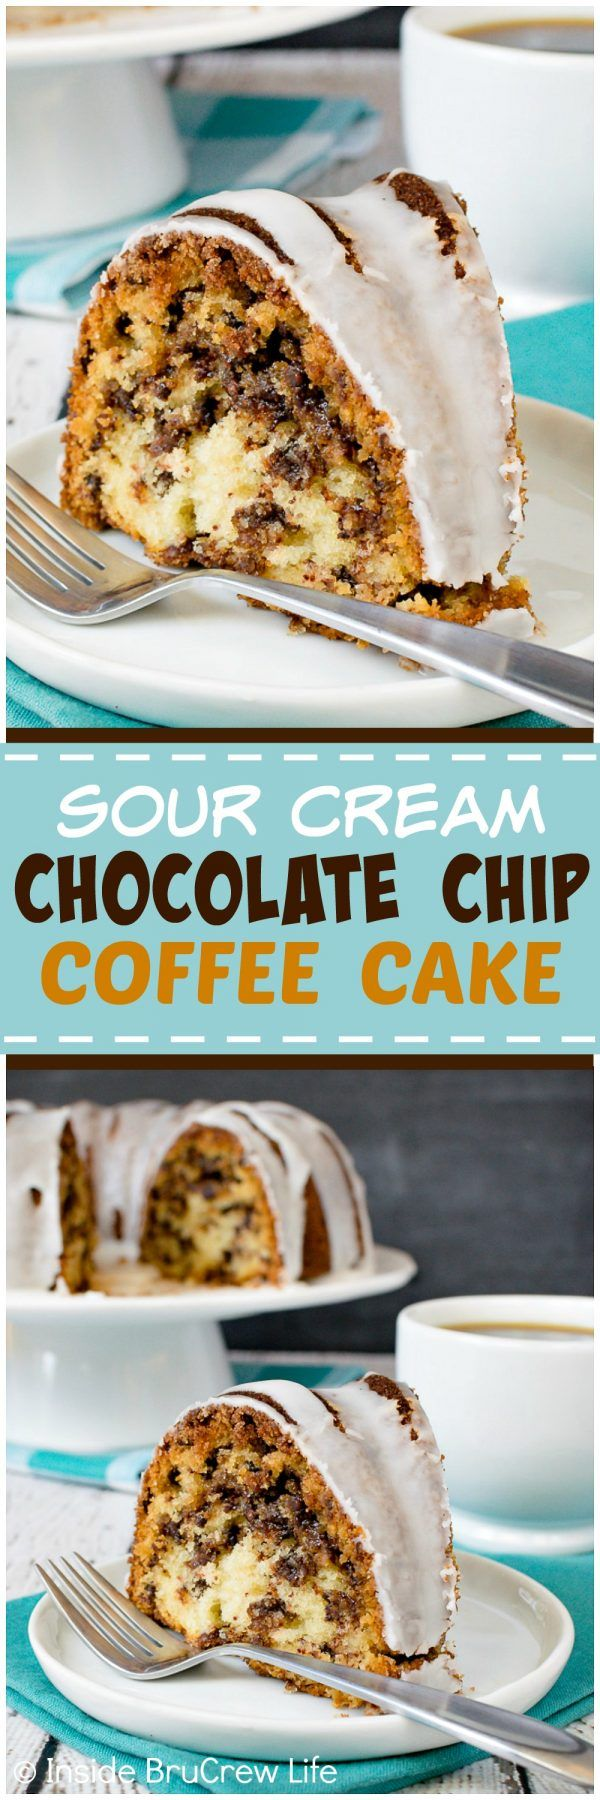 Sour Cream Chocolate Chip Coffee Cake - this coffee cake has a swirl cinnamon sugar inside and a sweet glaze on top. It's the perfect recipe for breakfast or brunch! ~ Inside BruCrew Life